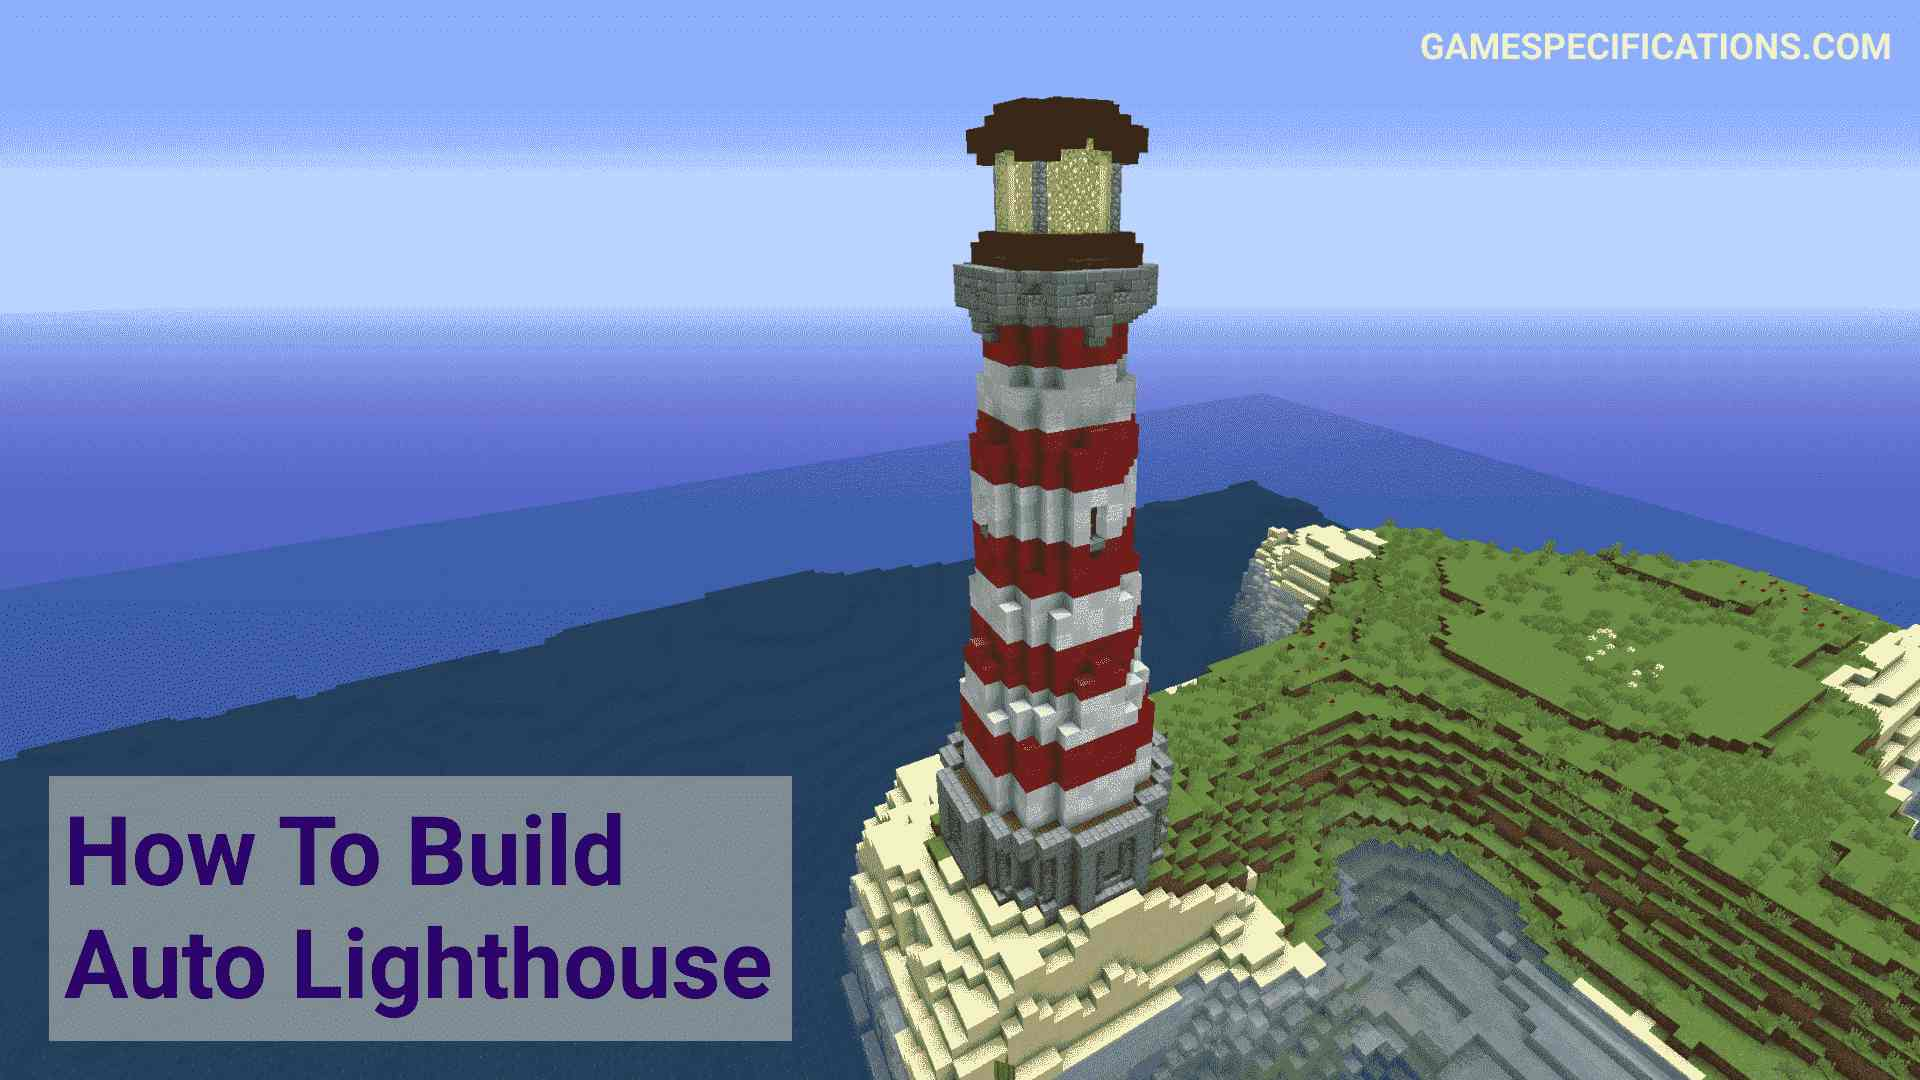 Best Lighthouse Minecraft Builds - Game Specifications